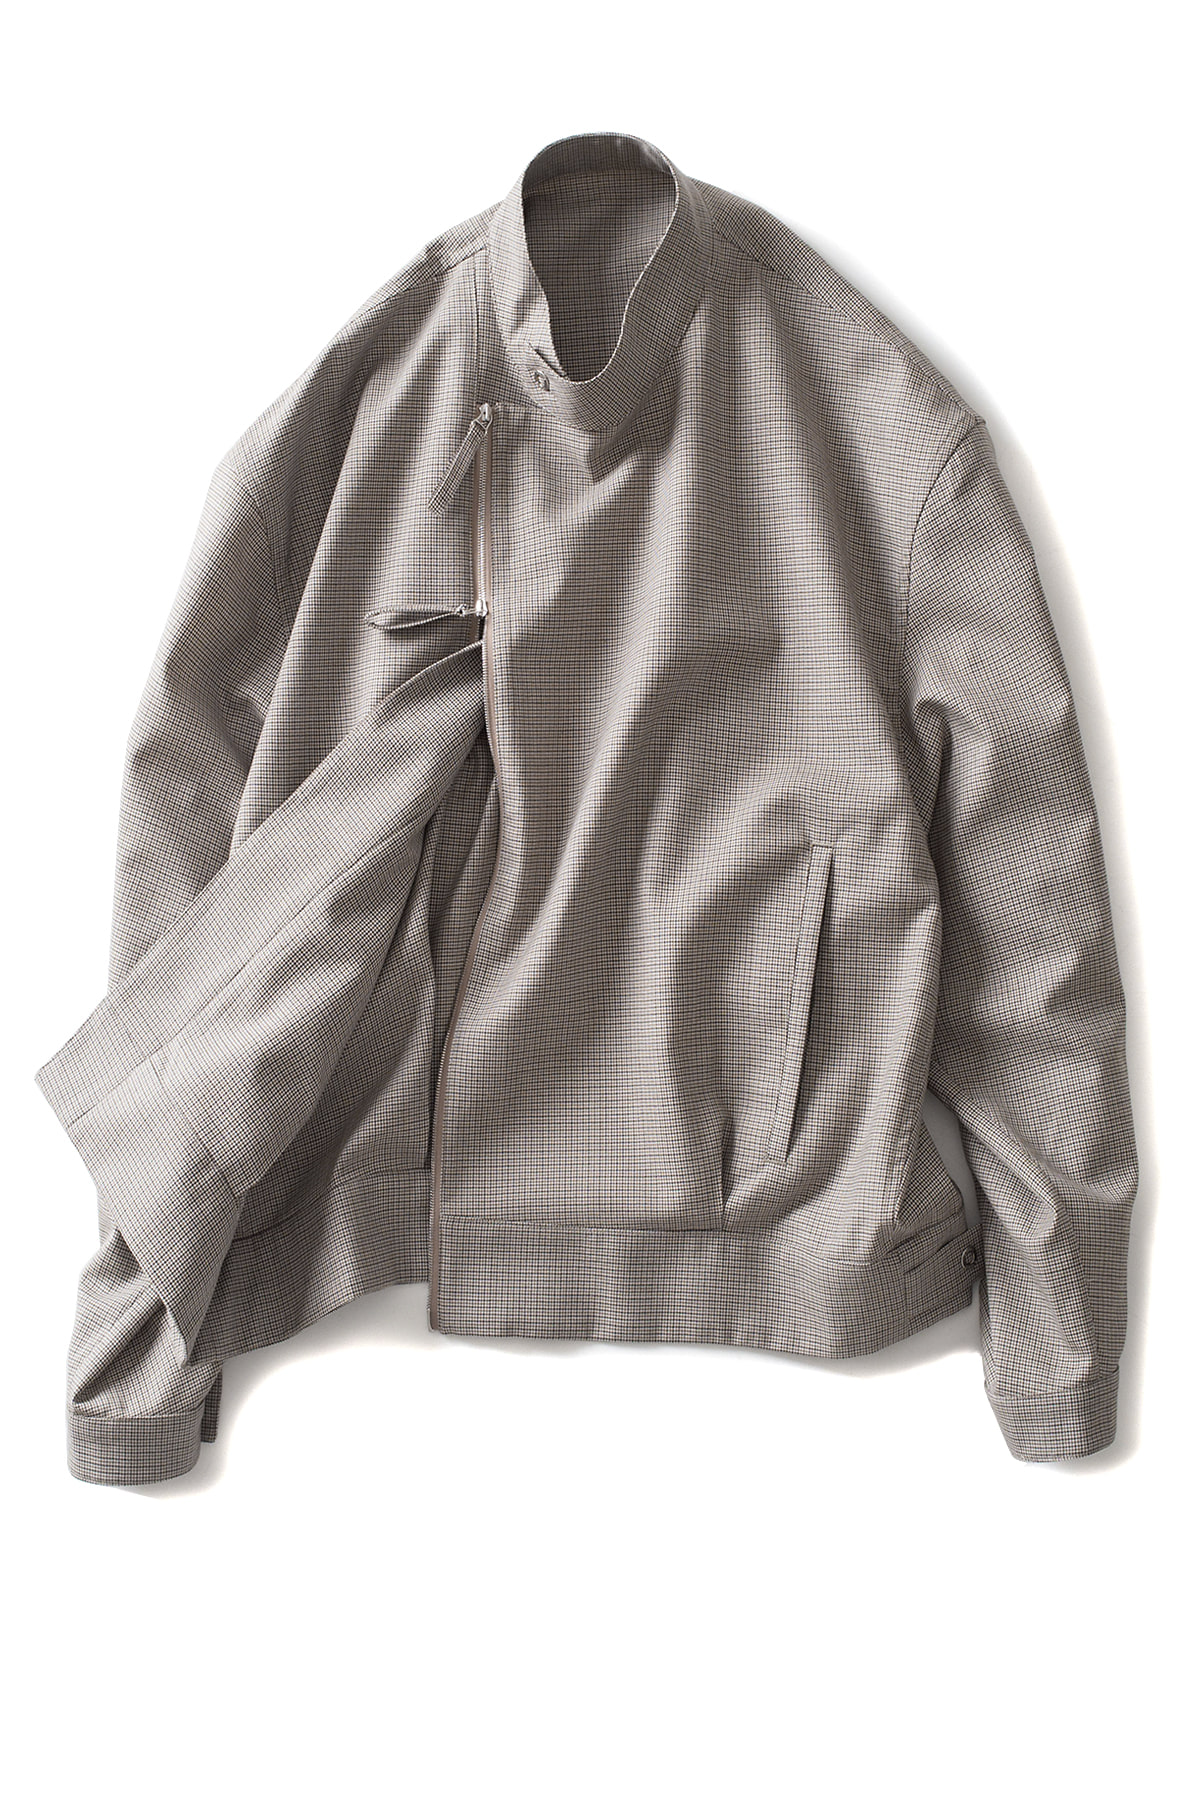 E. Tautz : Jeremy Jacket (Check)